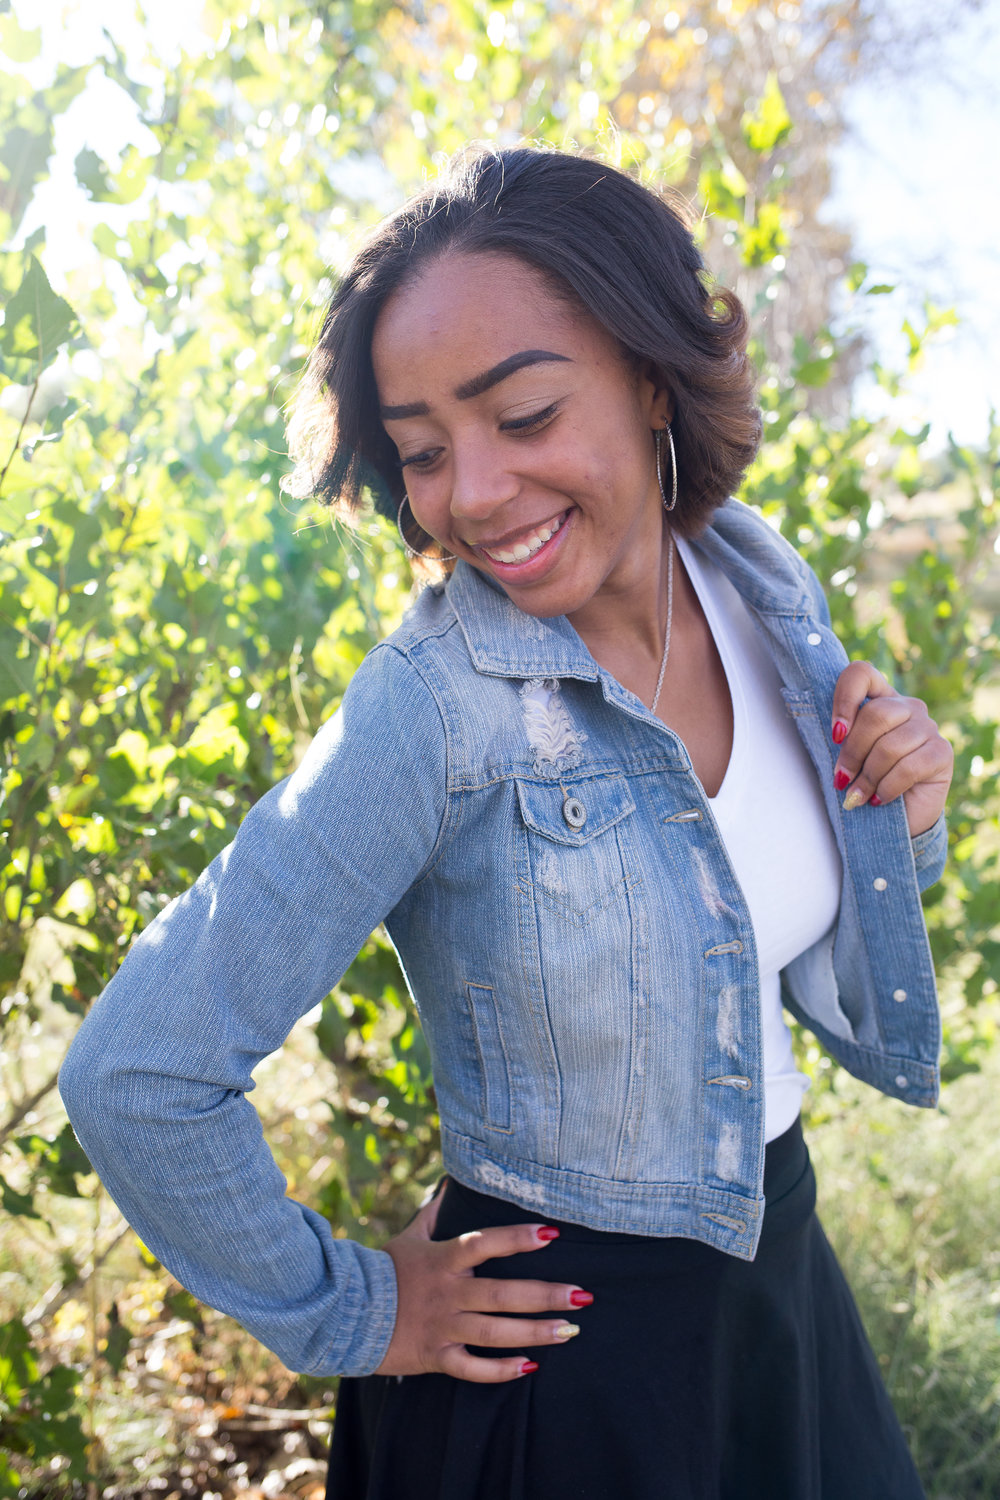 Widefield High School Senior holding jean jacket and looking over her shoulder at Fountain Creek Regional Park in Colorado Springs, CO Stacy Carosa Photography